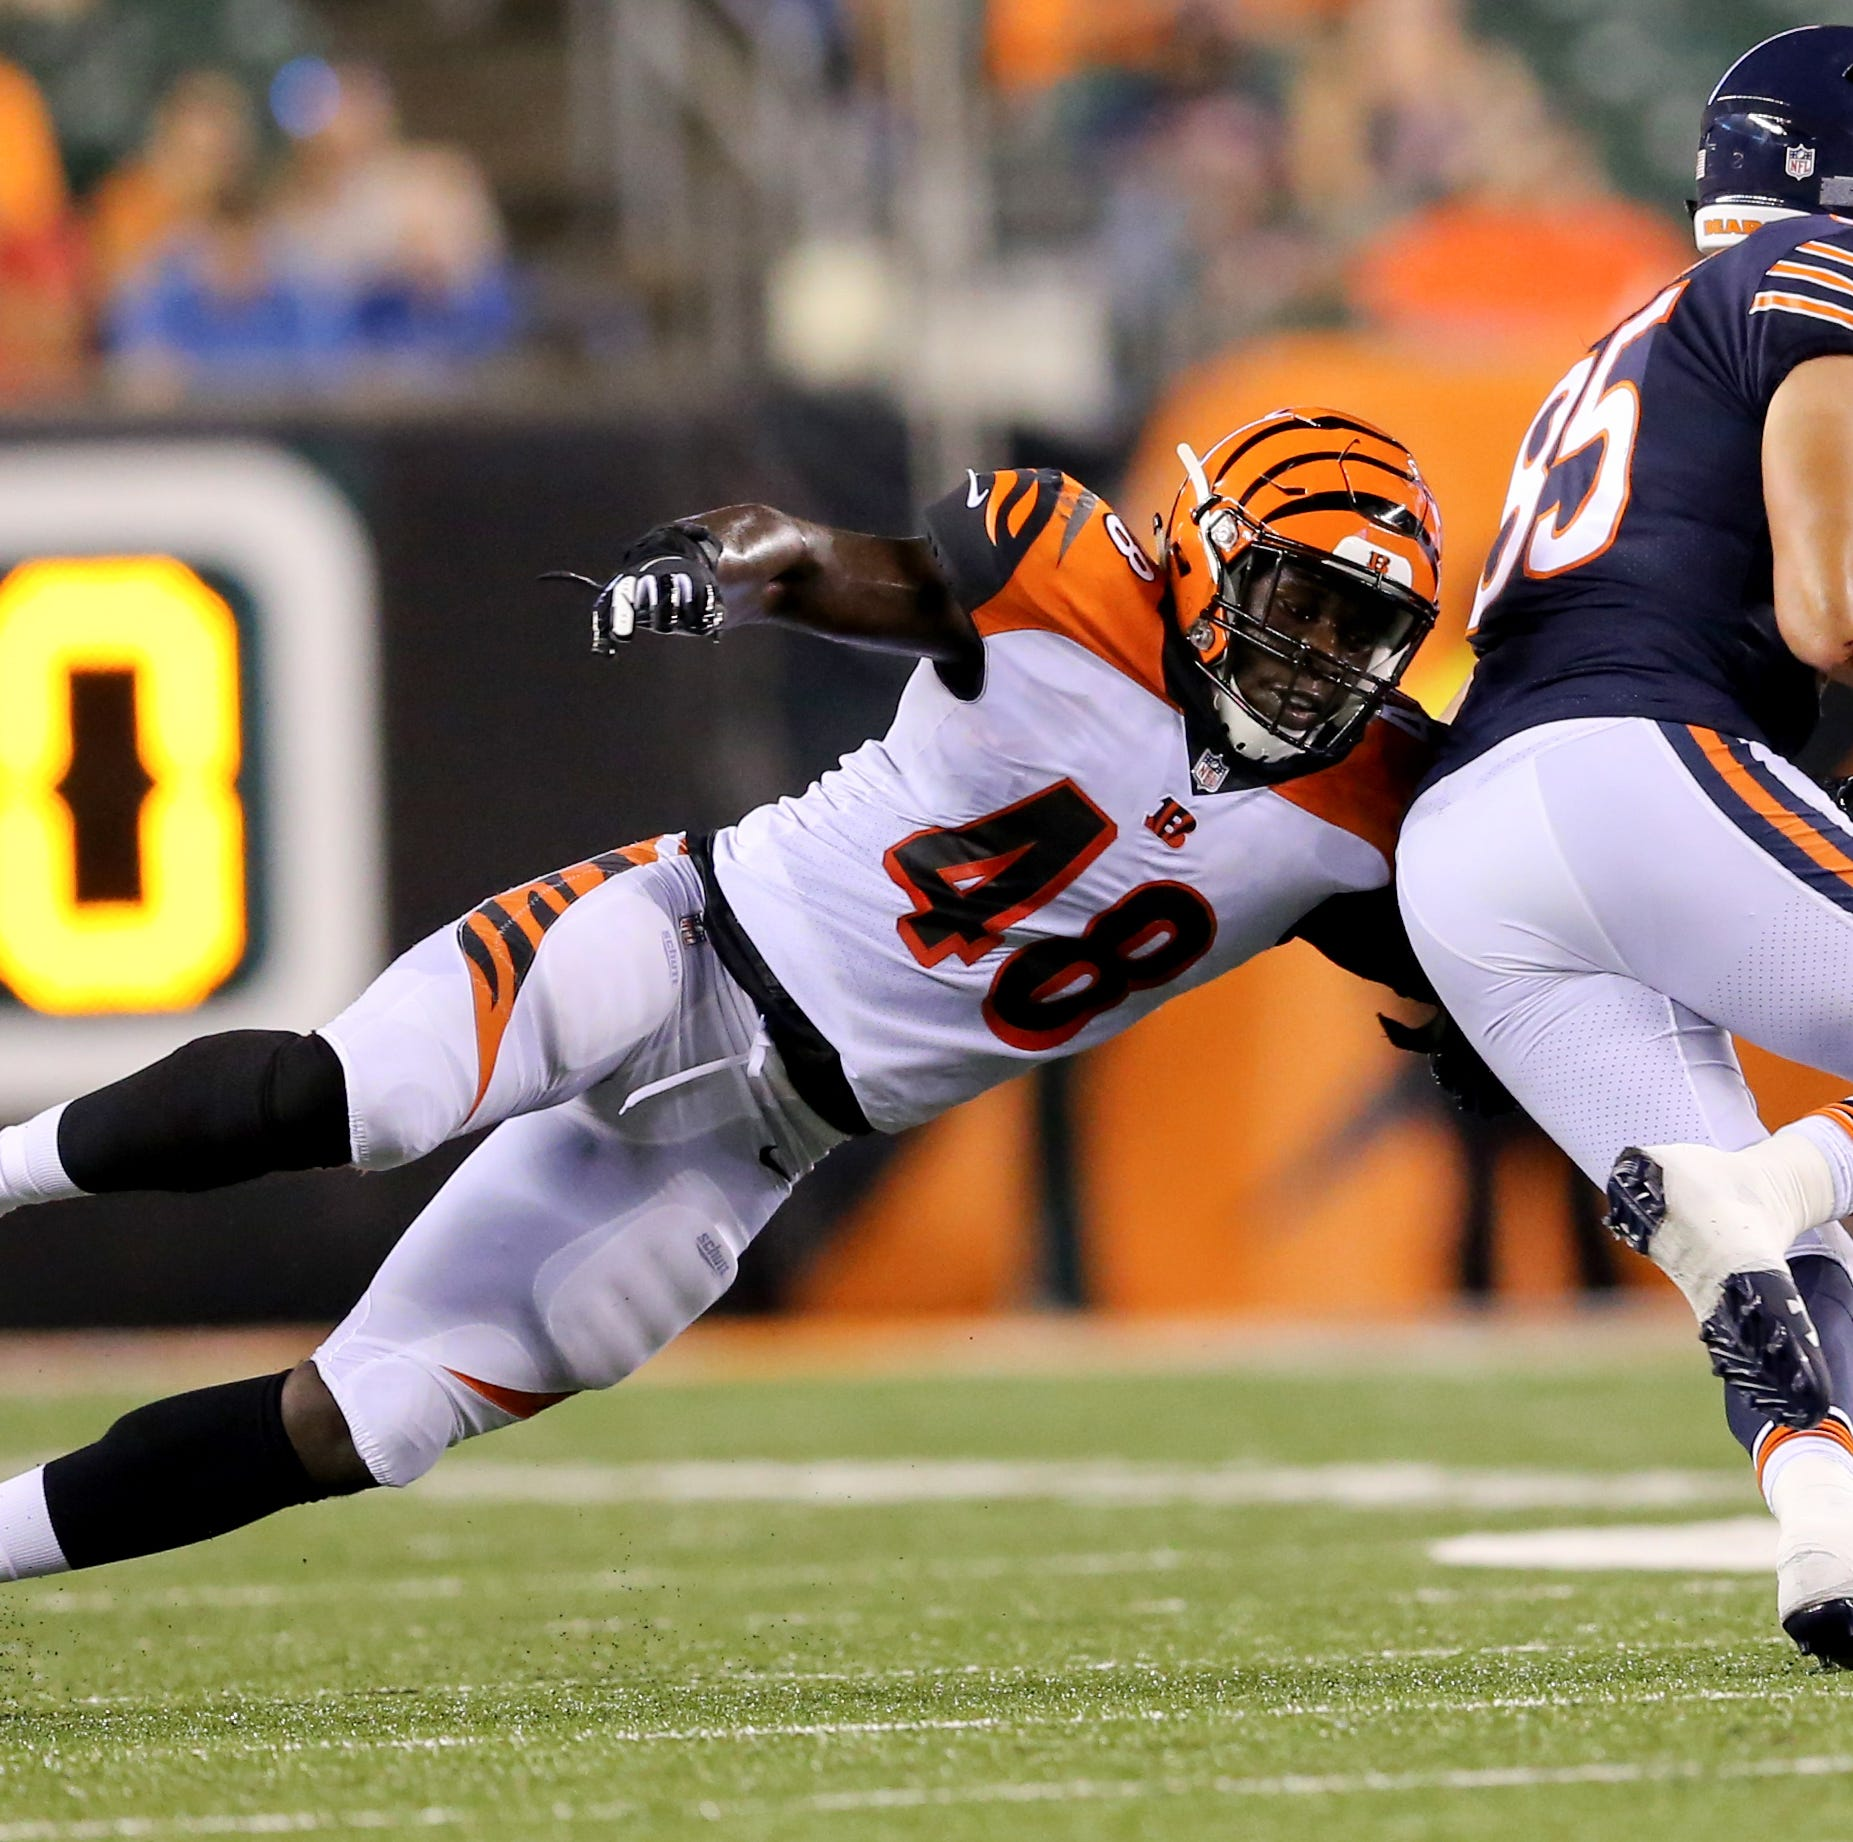 Undrafted linebackers hoping to continue lineage with Cincinnati Bengals